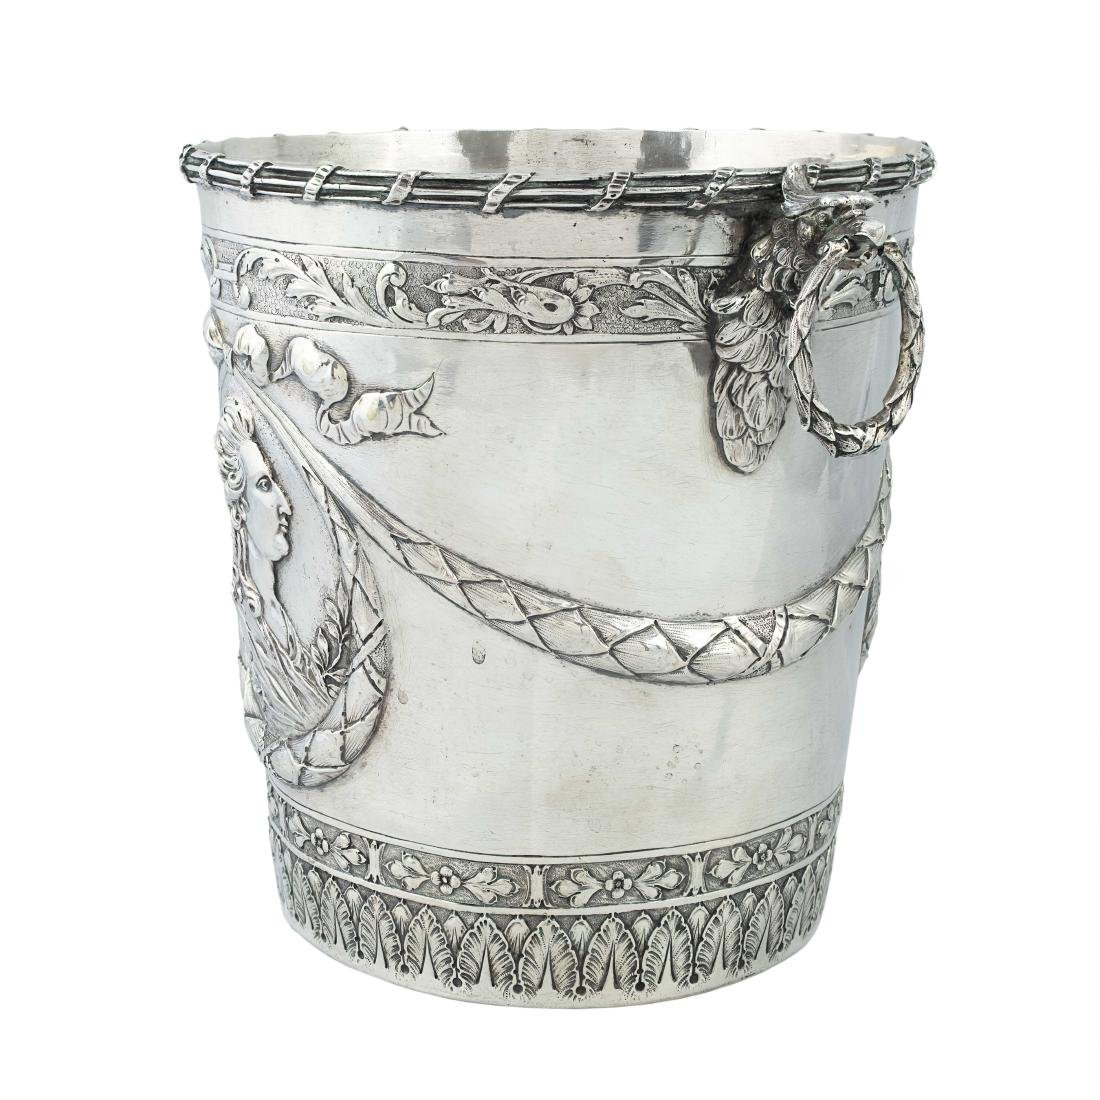 A German silver ice bucket, Hanau, circa 1900 - 2